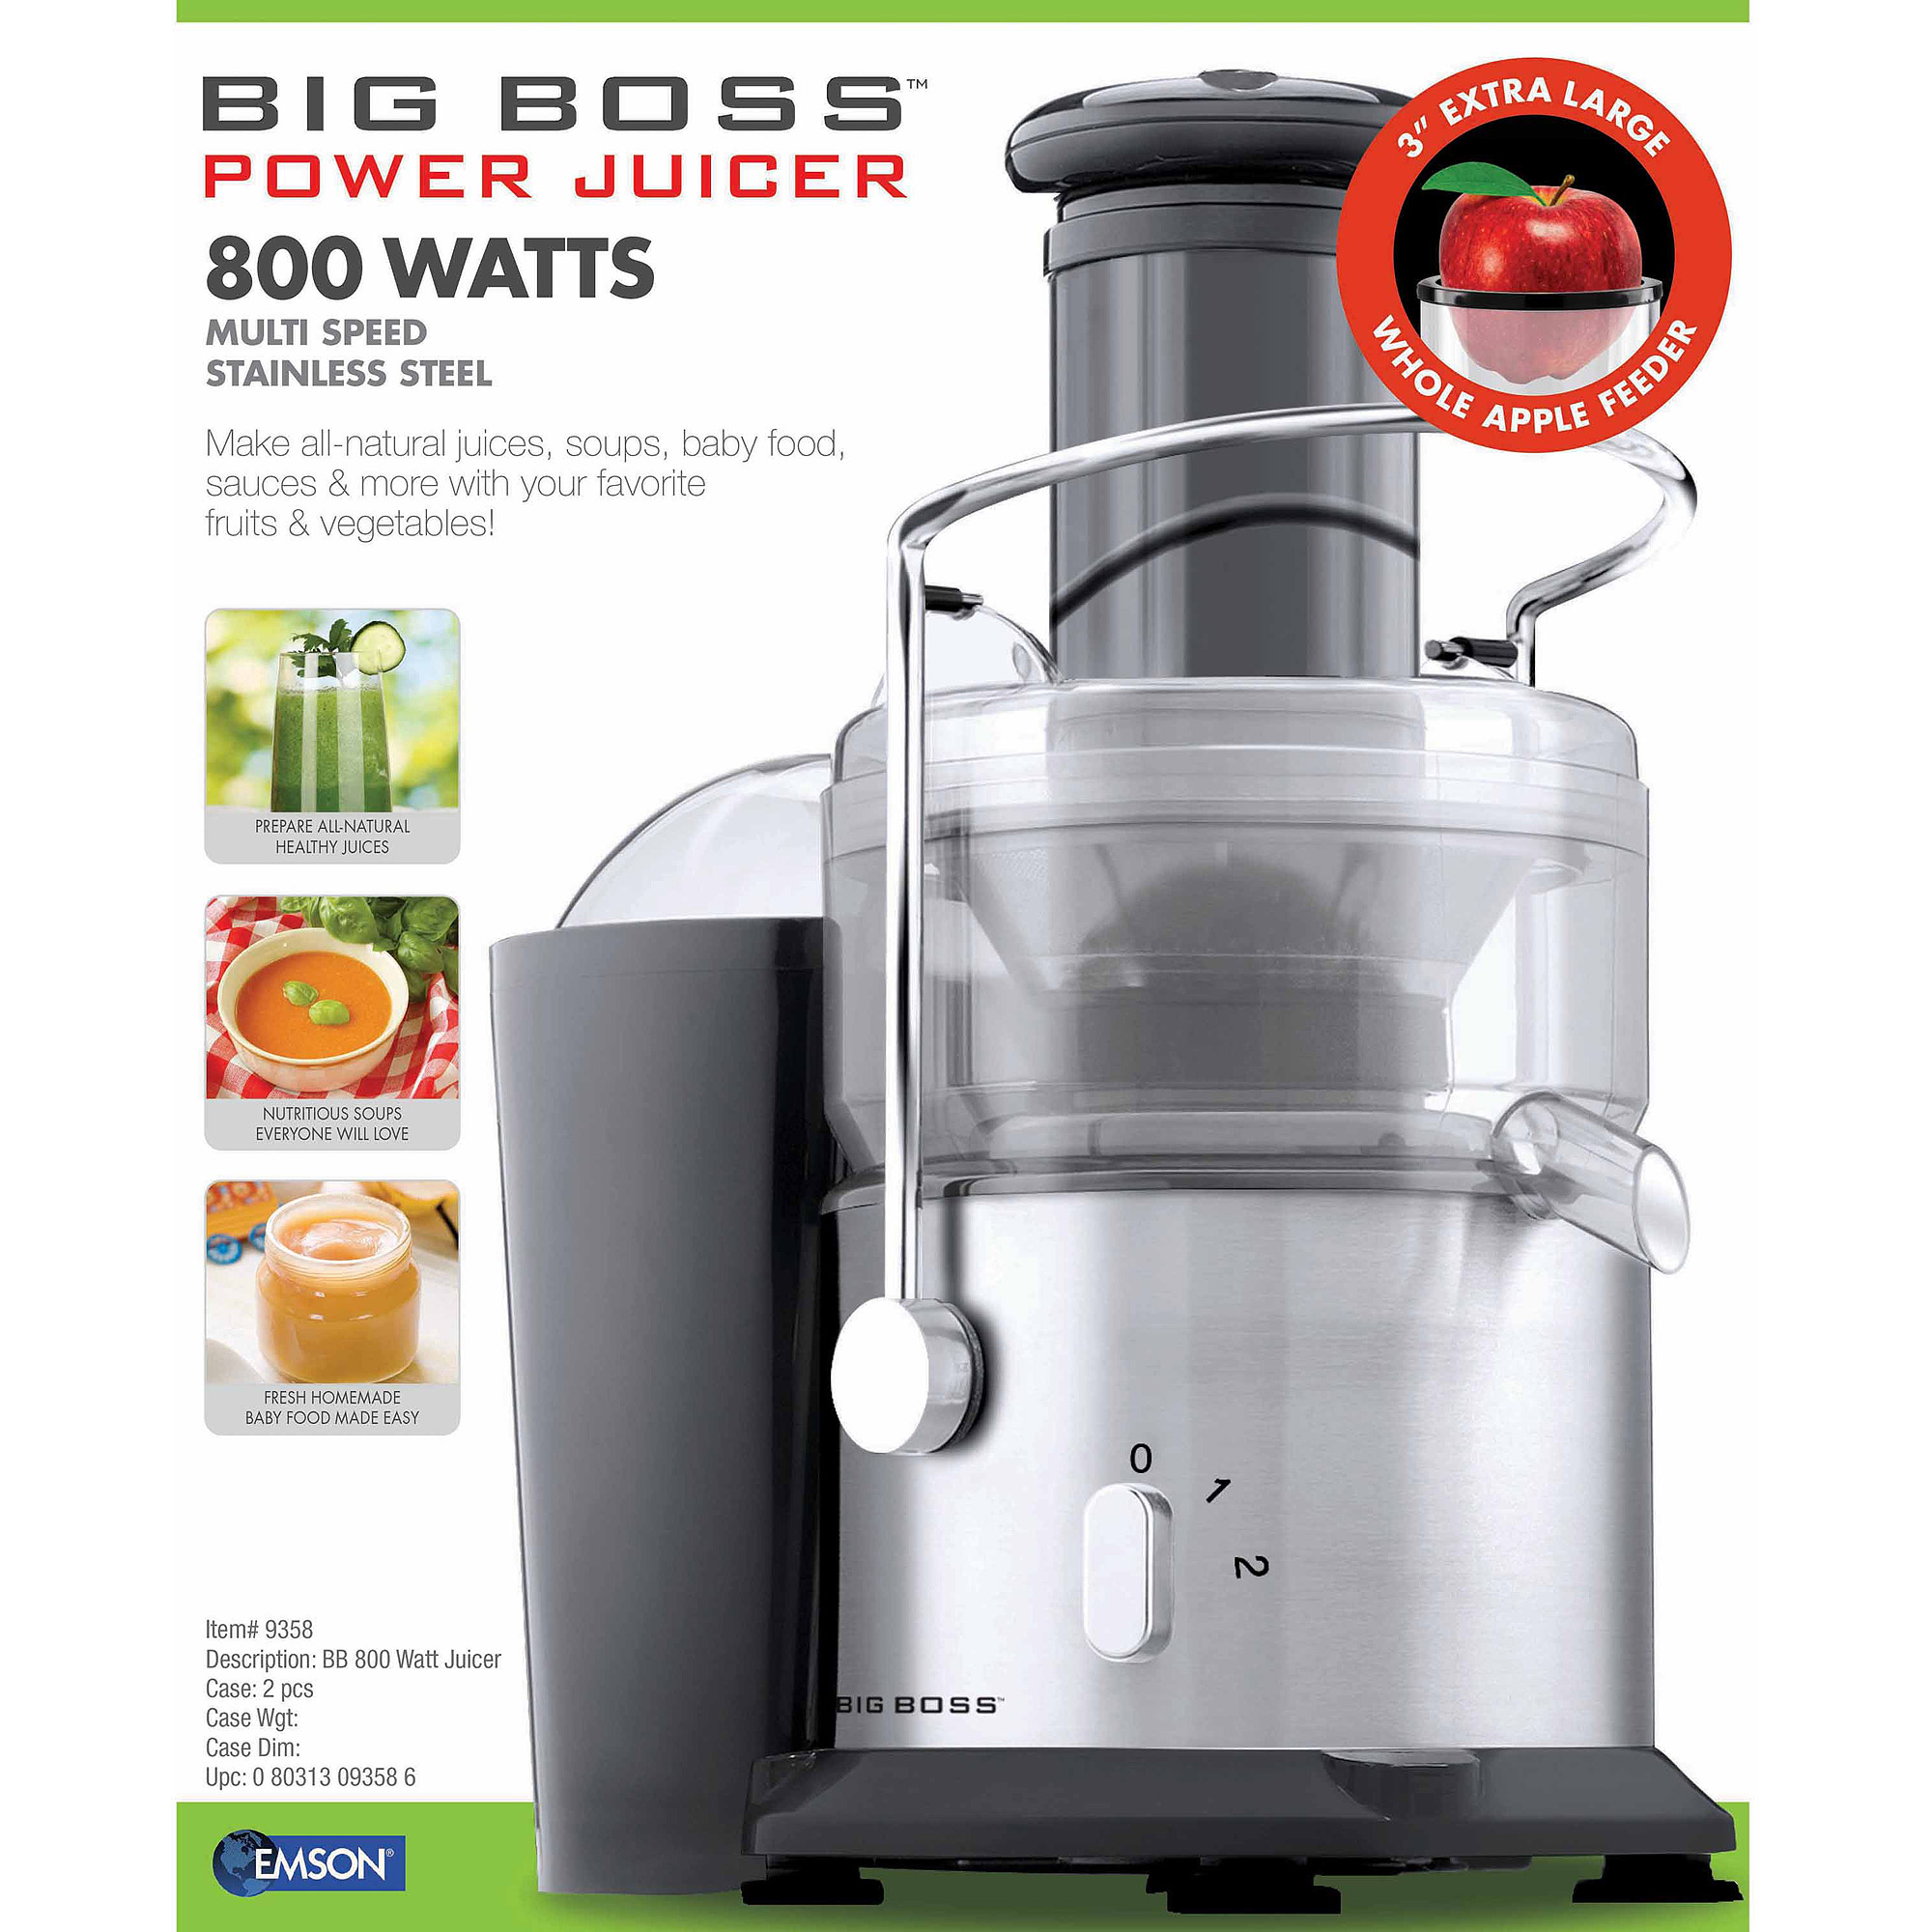 Big Boss 800-Watt Juicer by Emson